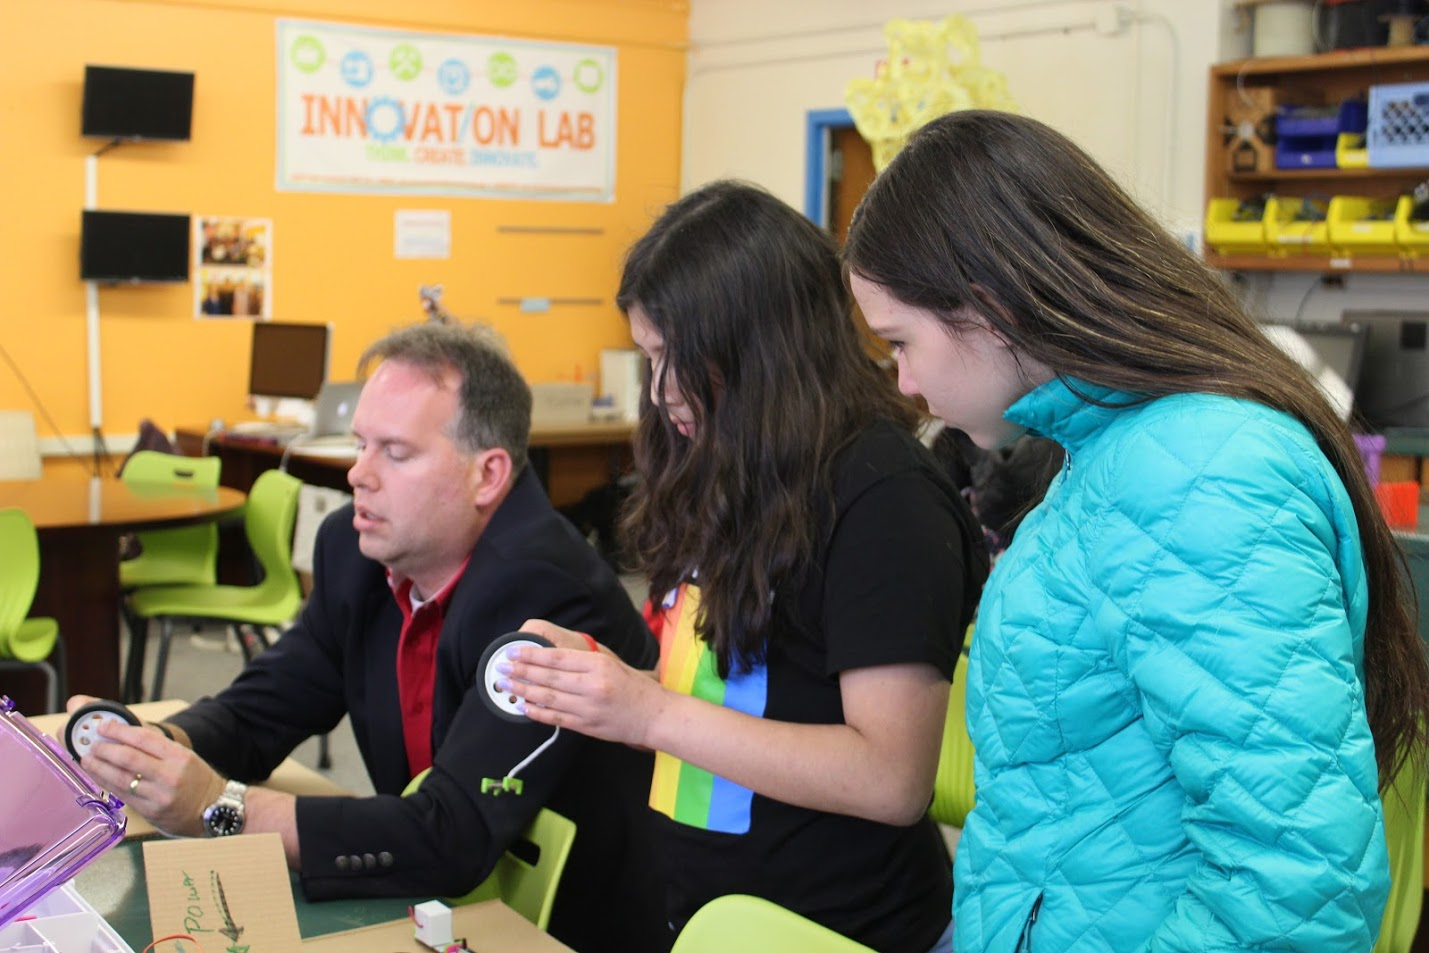 Innovation Lab Director David Ecker works with students.